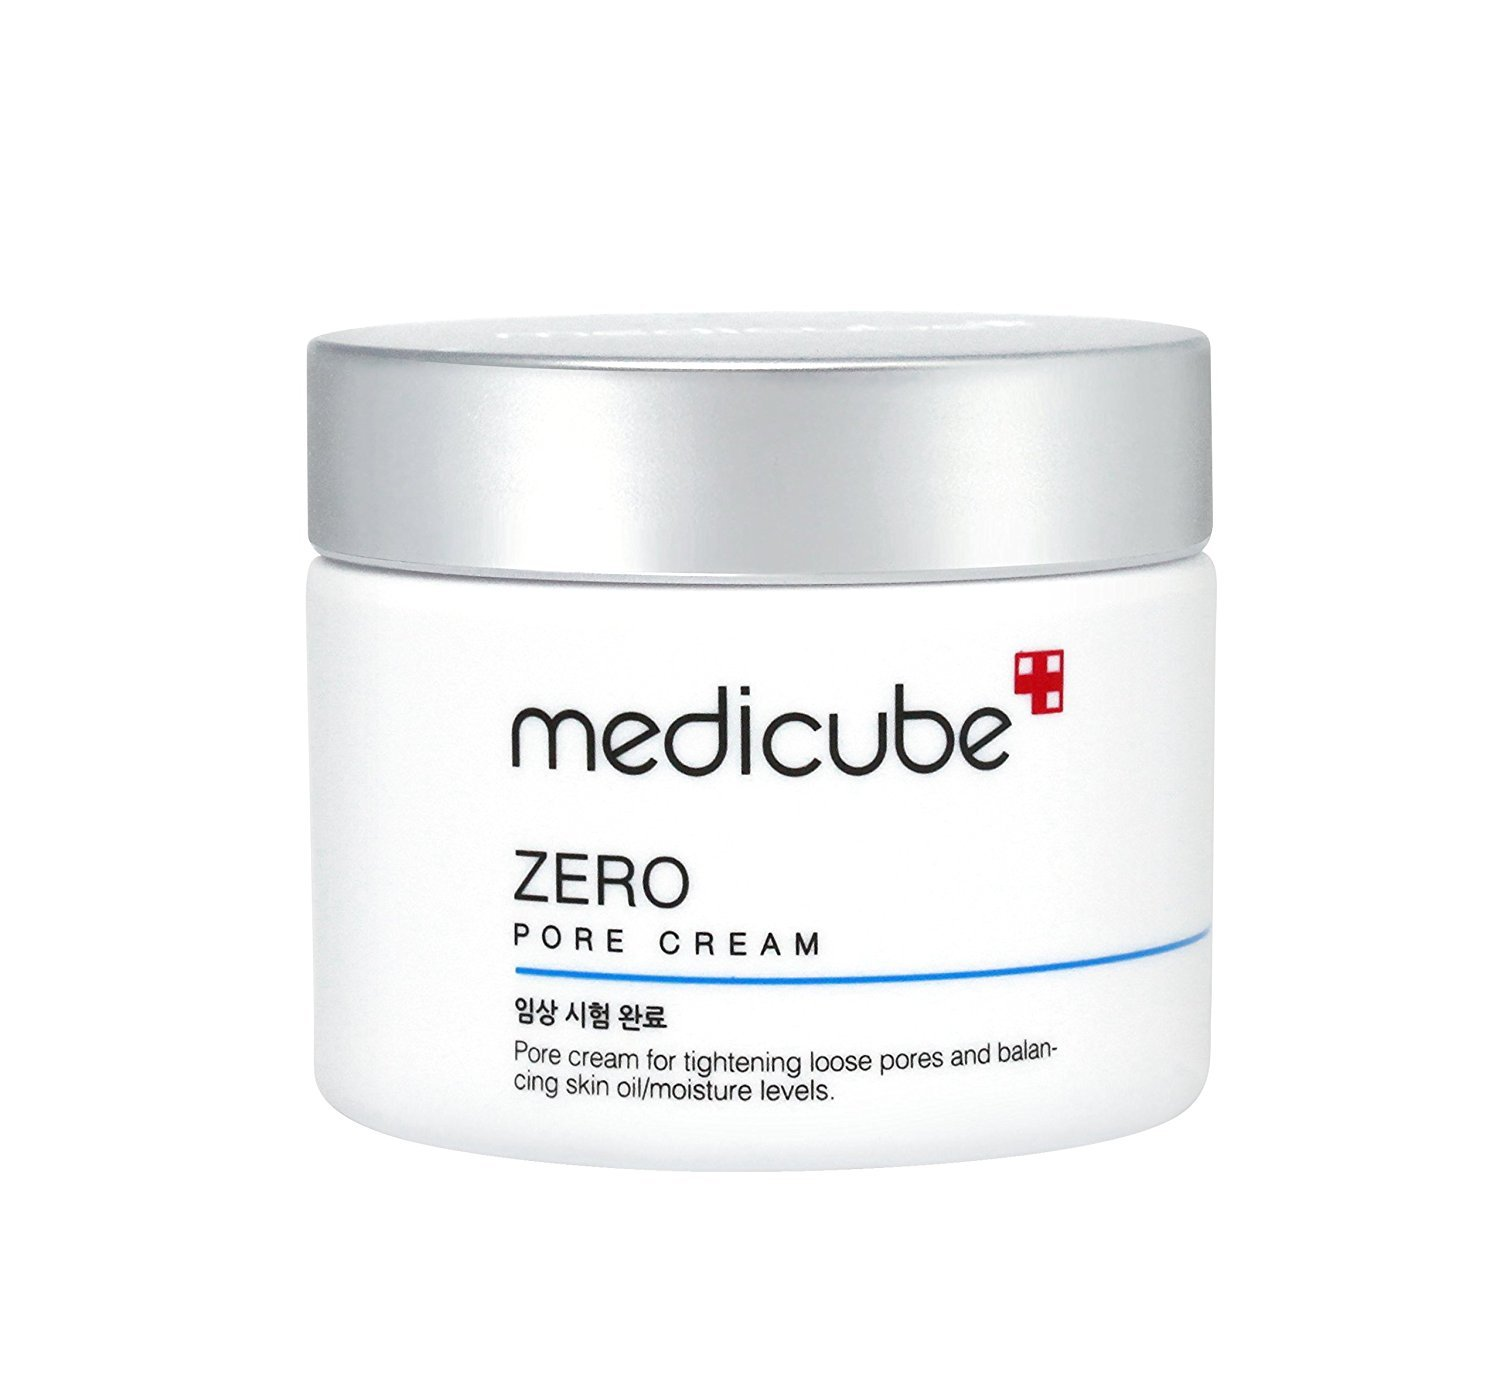 Medicube Zero Pore Cream 1 bottle, 60g